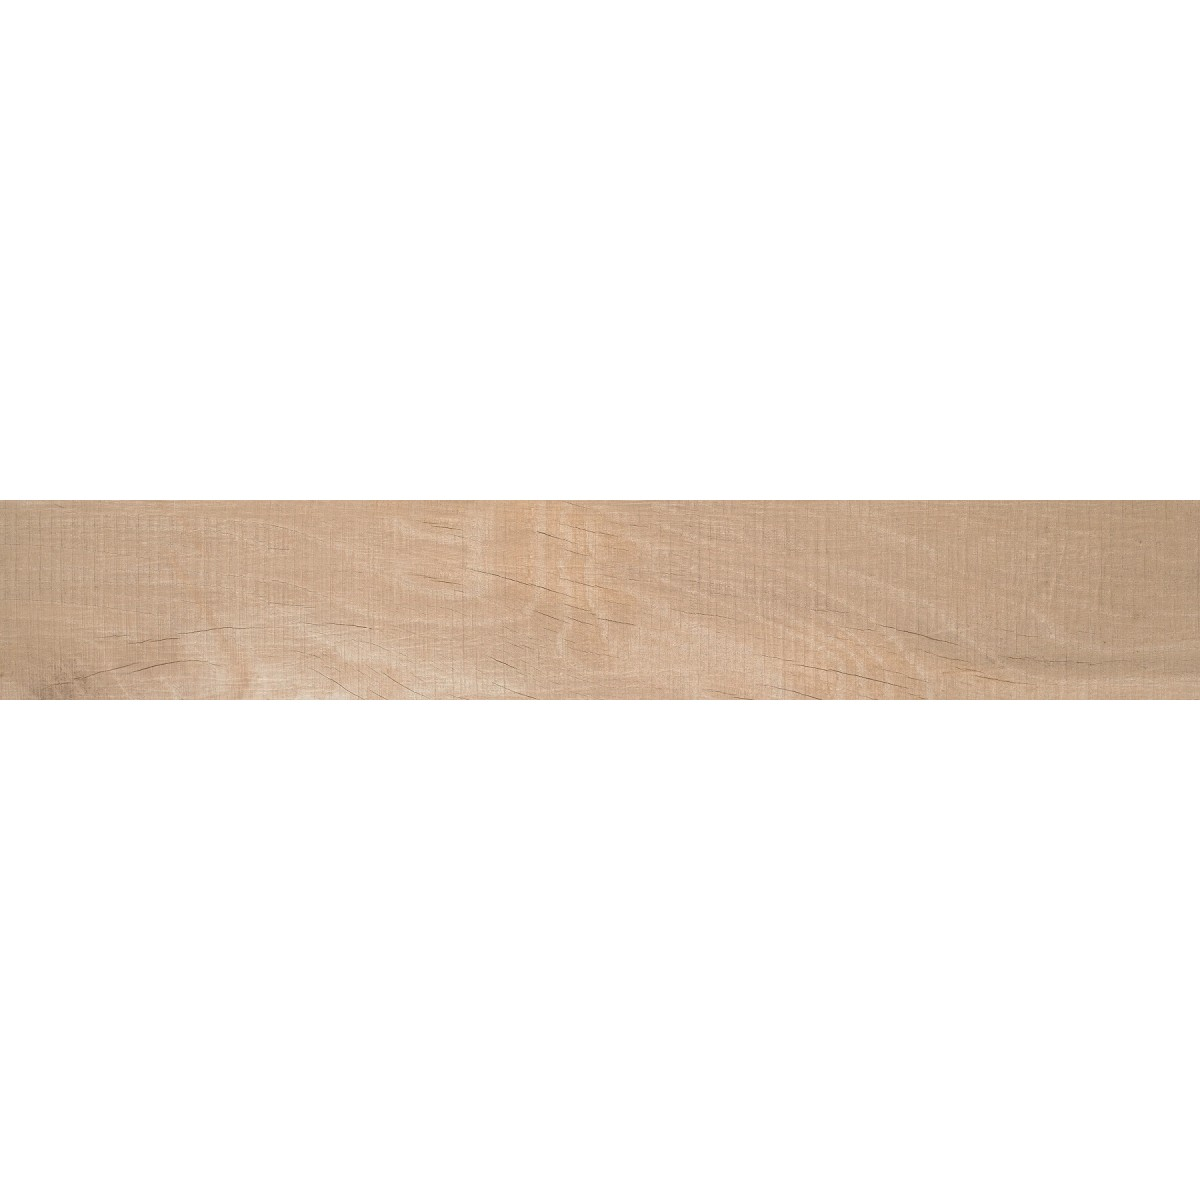 Holzoptik Old Wood 120x20x1,1cm